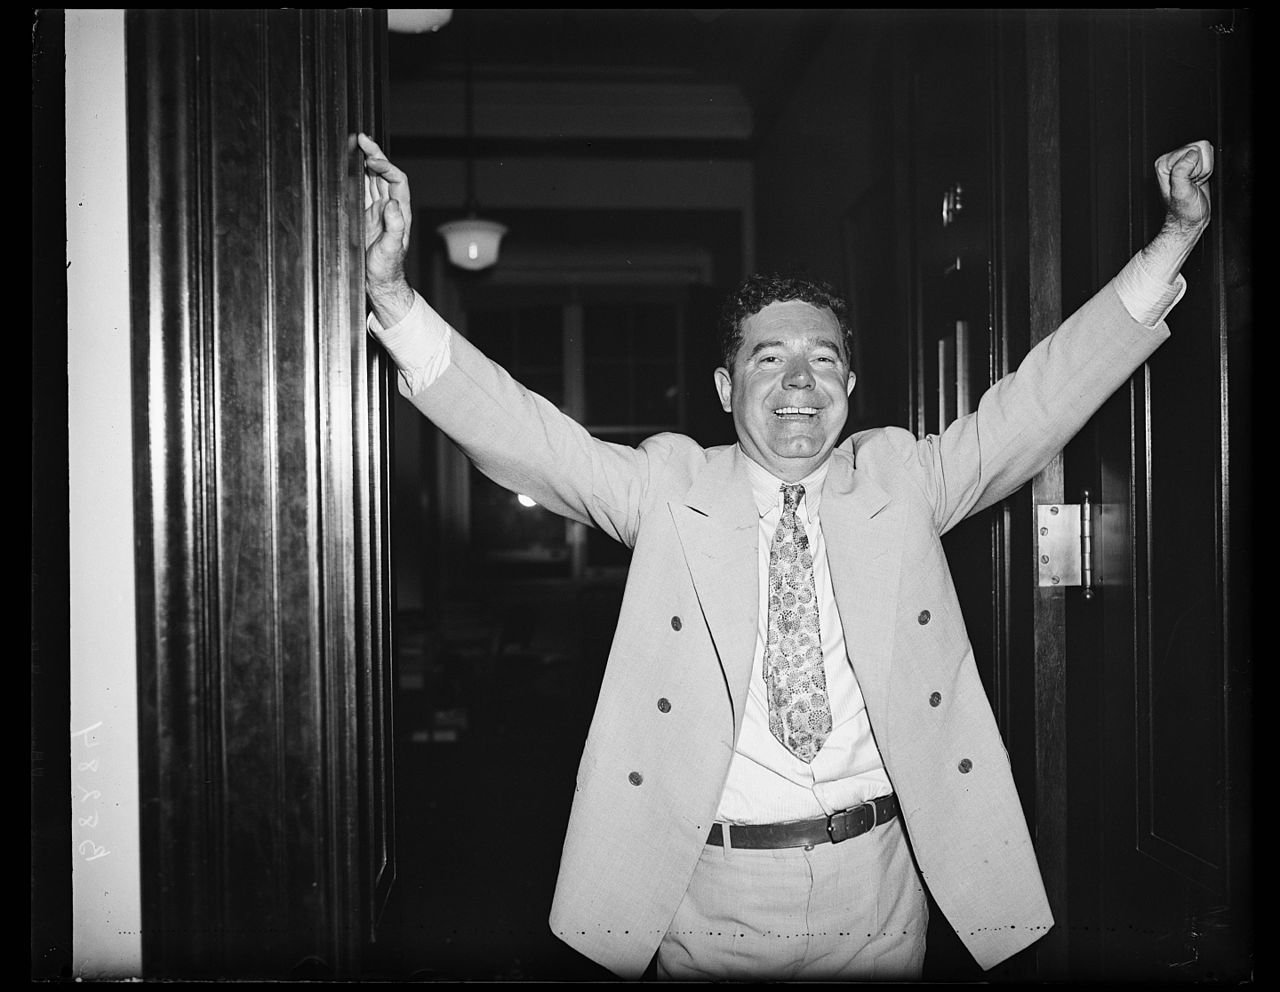 """an analysis of huey longs political career in huey long by t harry williams The assasination of huey long topics: huey long, franklin d roosevelt, louisiana state university pages: 5 (2051 words) published: april 30, 2008 huey long, nicknamed the """"kingfish"""", was a politician from louisiana who had an interesting and tumultuous political career that culminated in his assassination attempt on september 8, 1935."""